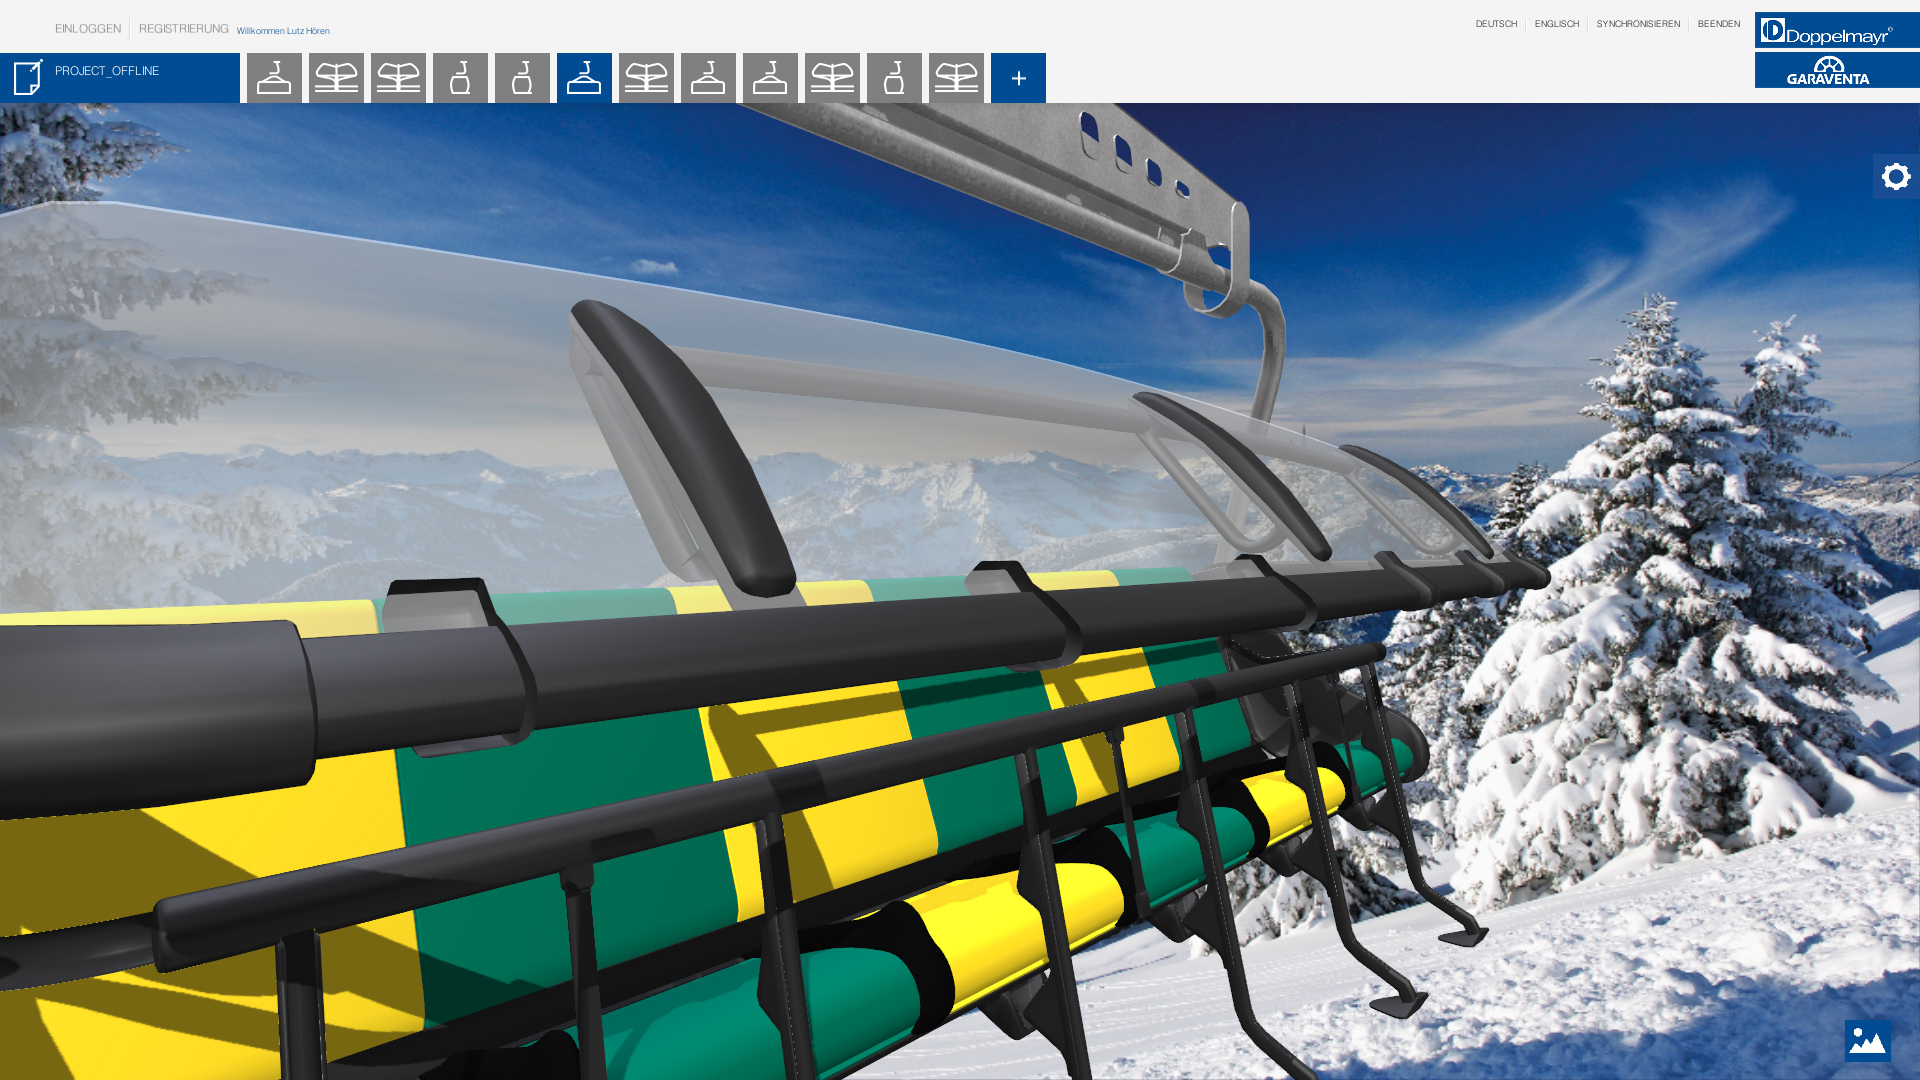 doppelmayr ropeway configurator chairlift zoom